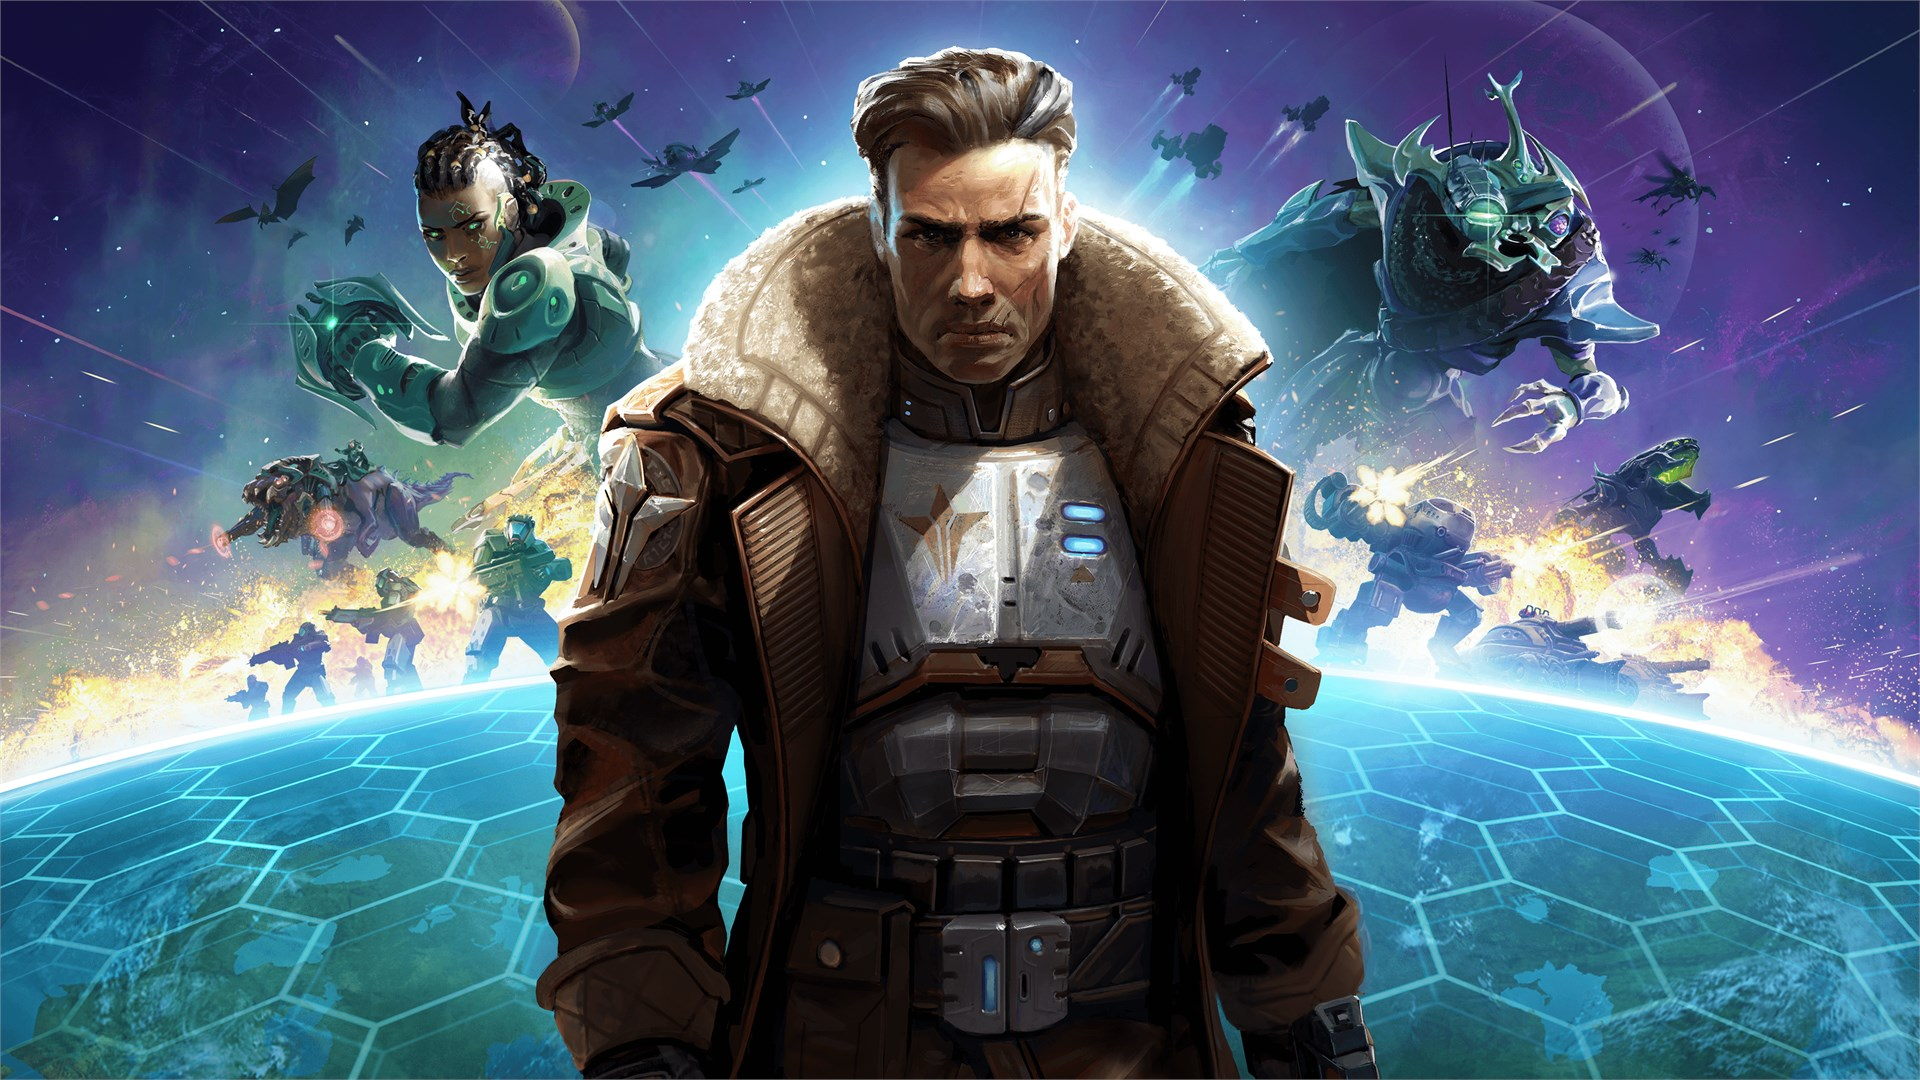 Video For Build Extraordinary Empires Today in Age of Wonders: Planetfall on Xbox One